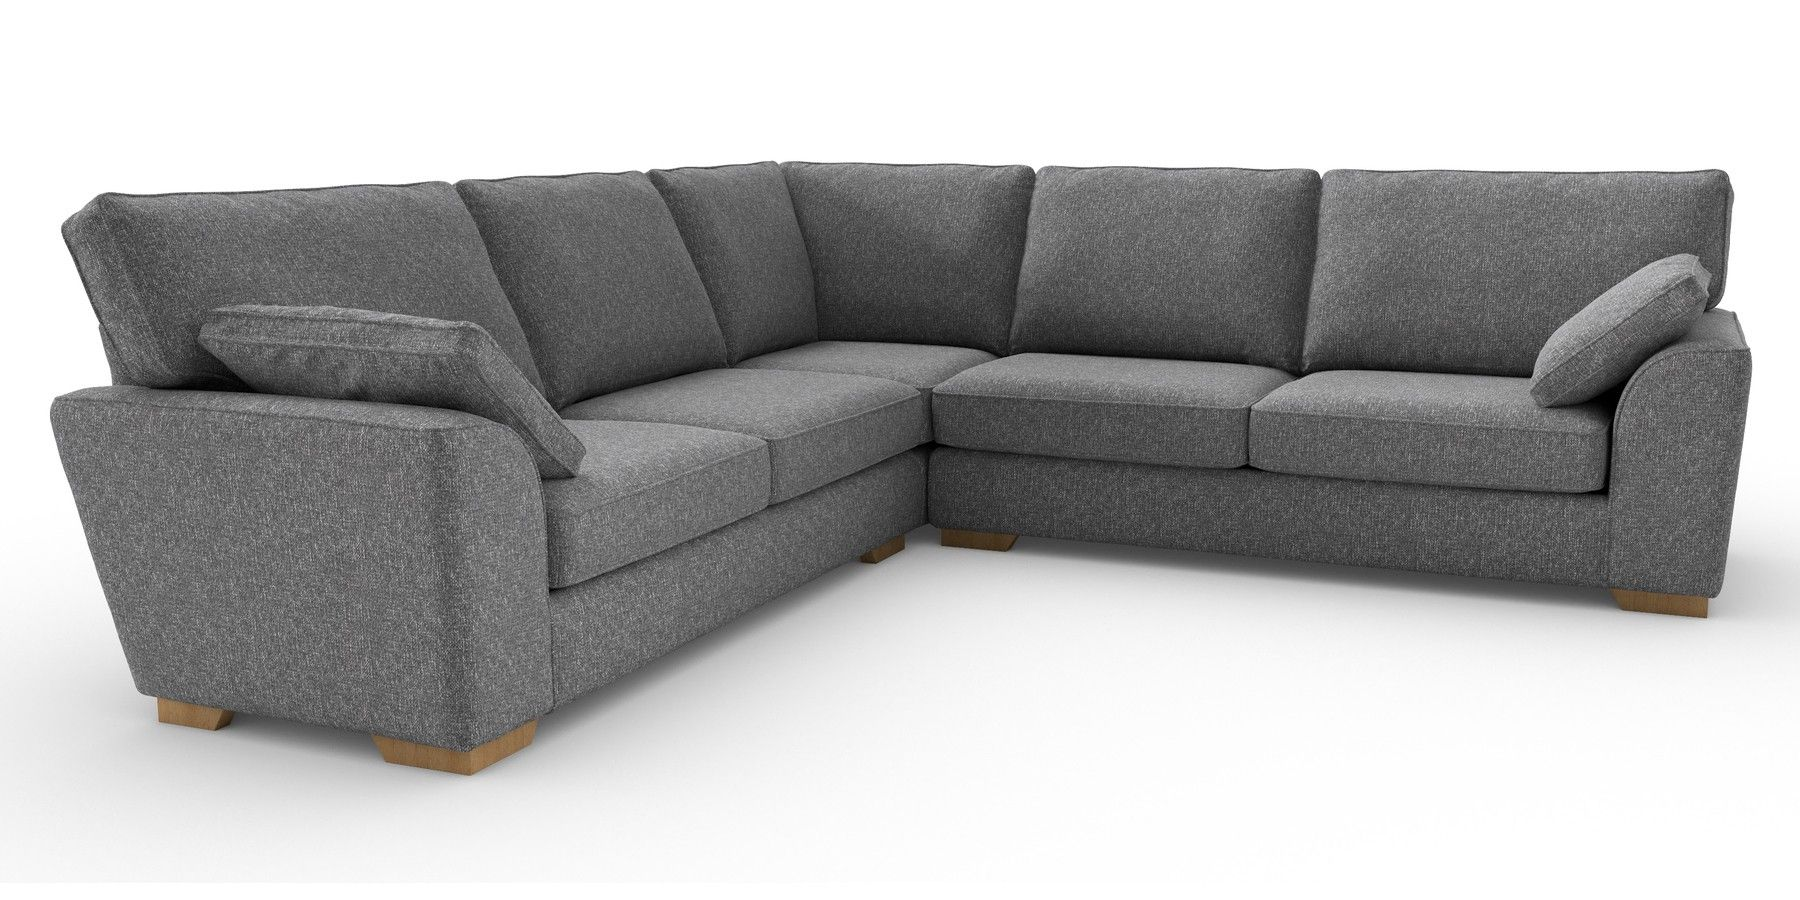 Buy Stamford Universal Corner Sofa 5 Seats Tweedy Blend Mid Grey Large Square Angle Light From The Next Uk Online Shop Corner Sofa Corner Sofa Uk Sofa